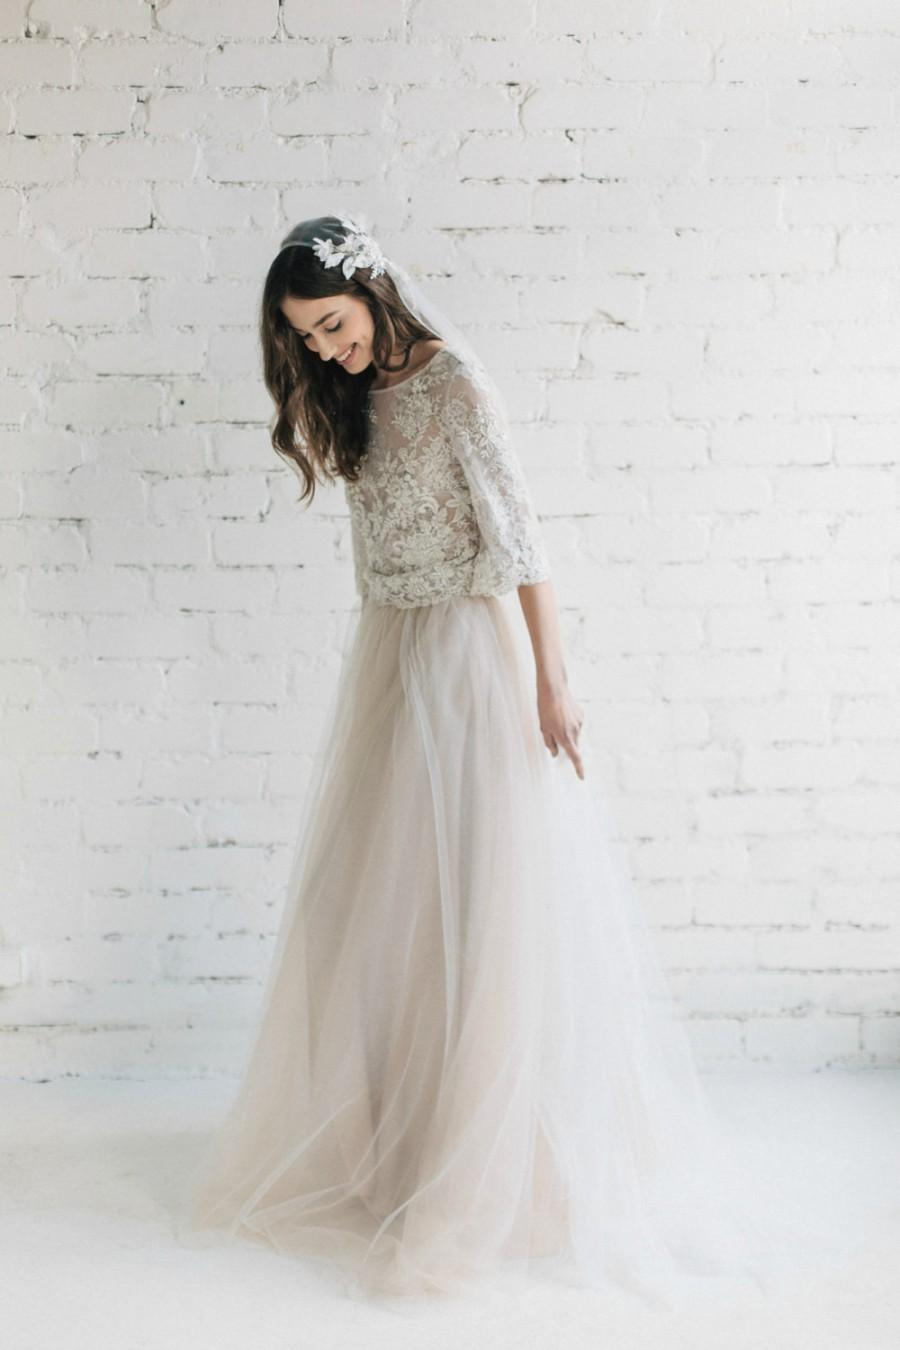 Mariage - Bohemian Wedding Dress, Two Piece Bridal Dress, Bridal Separates ,Pastel Champagne Ivory Nude Wedding Dress ,Lace Top , Tulle Skirt - Peony